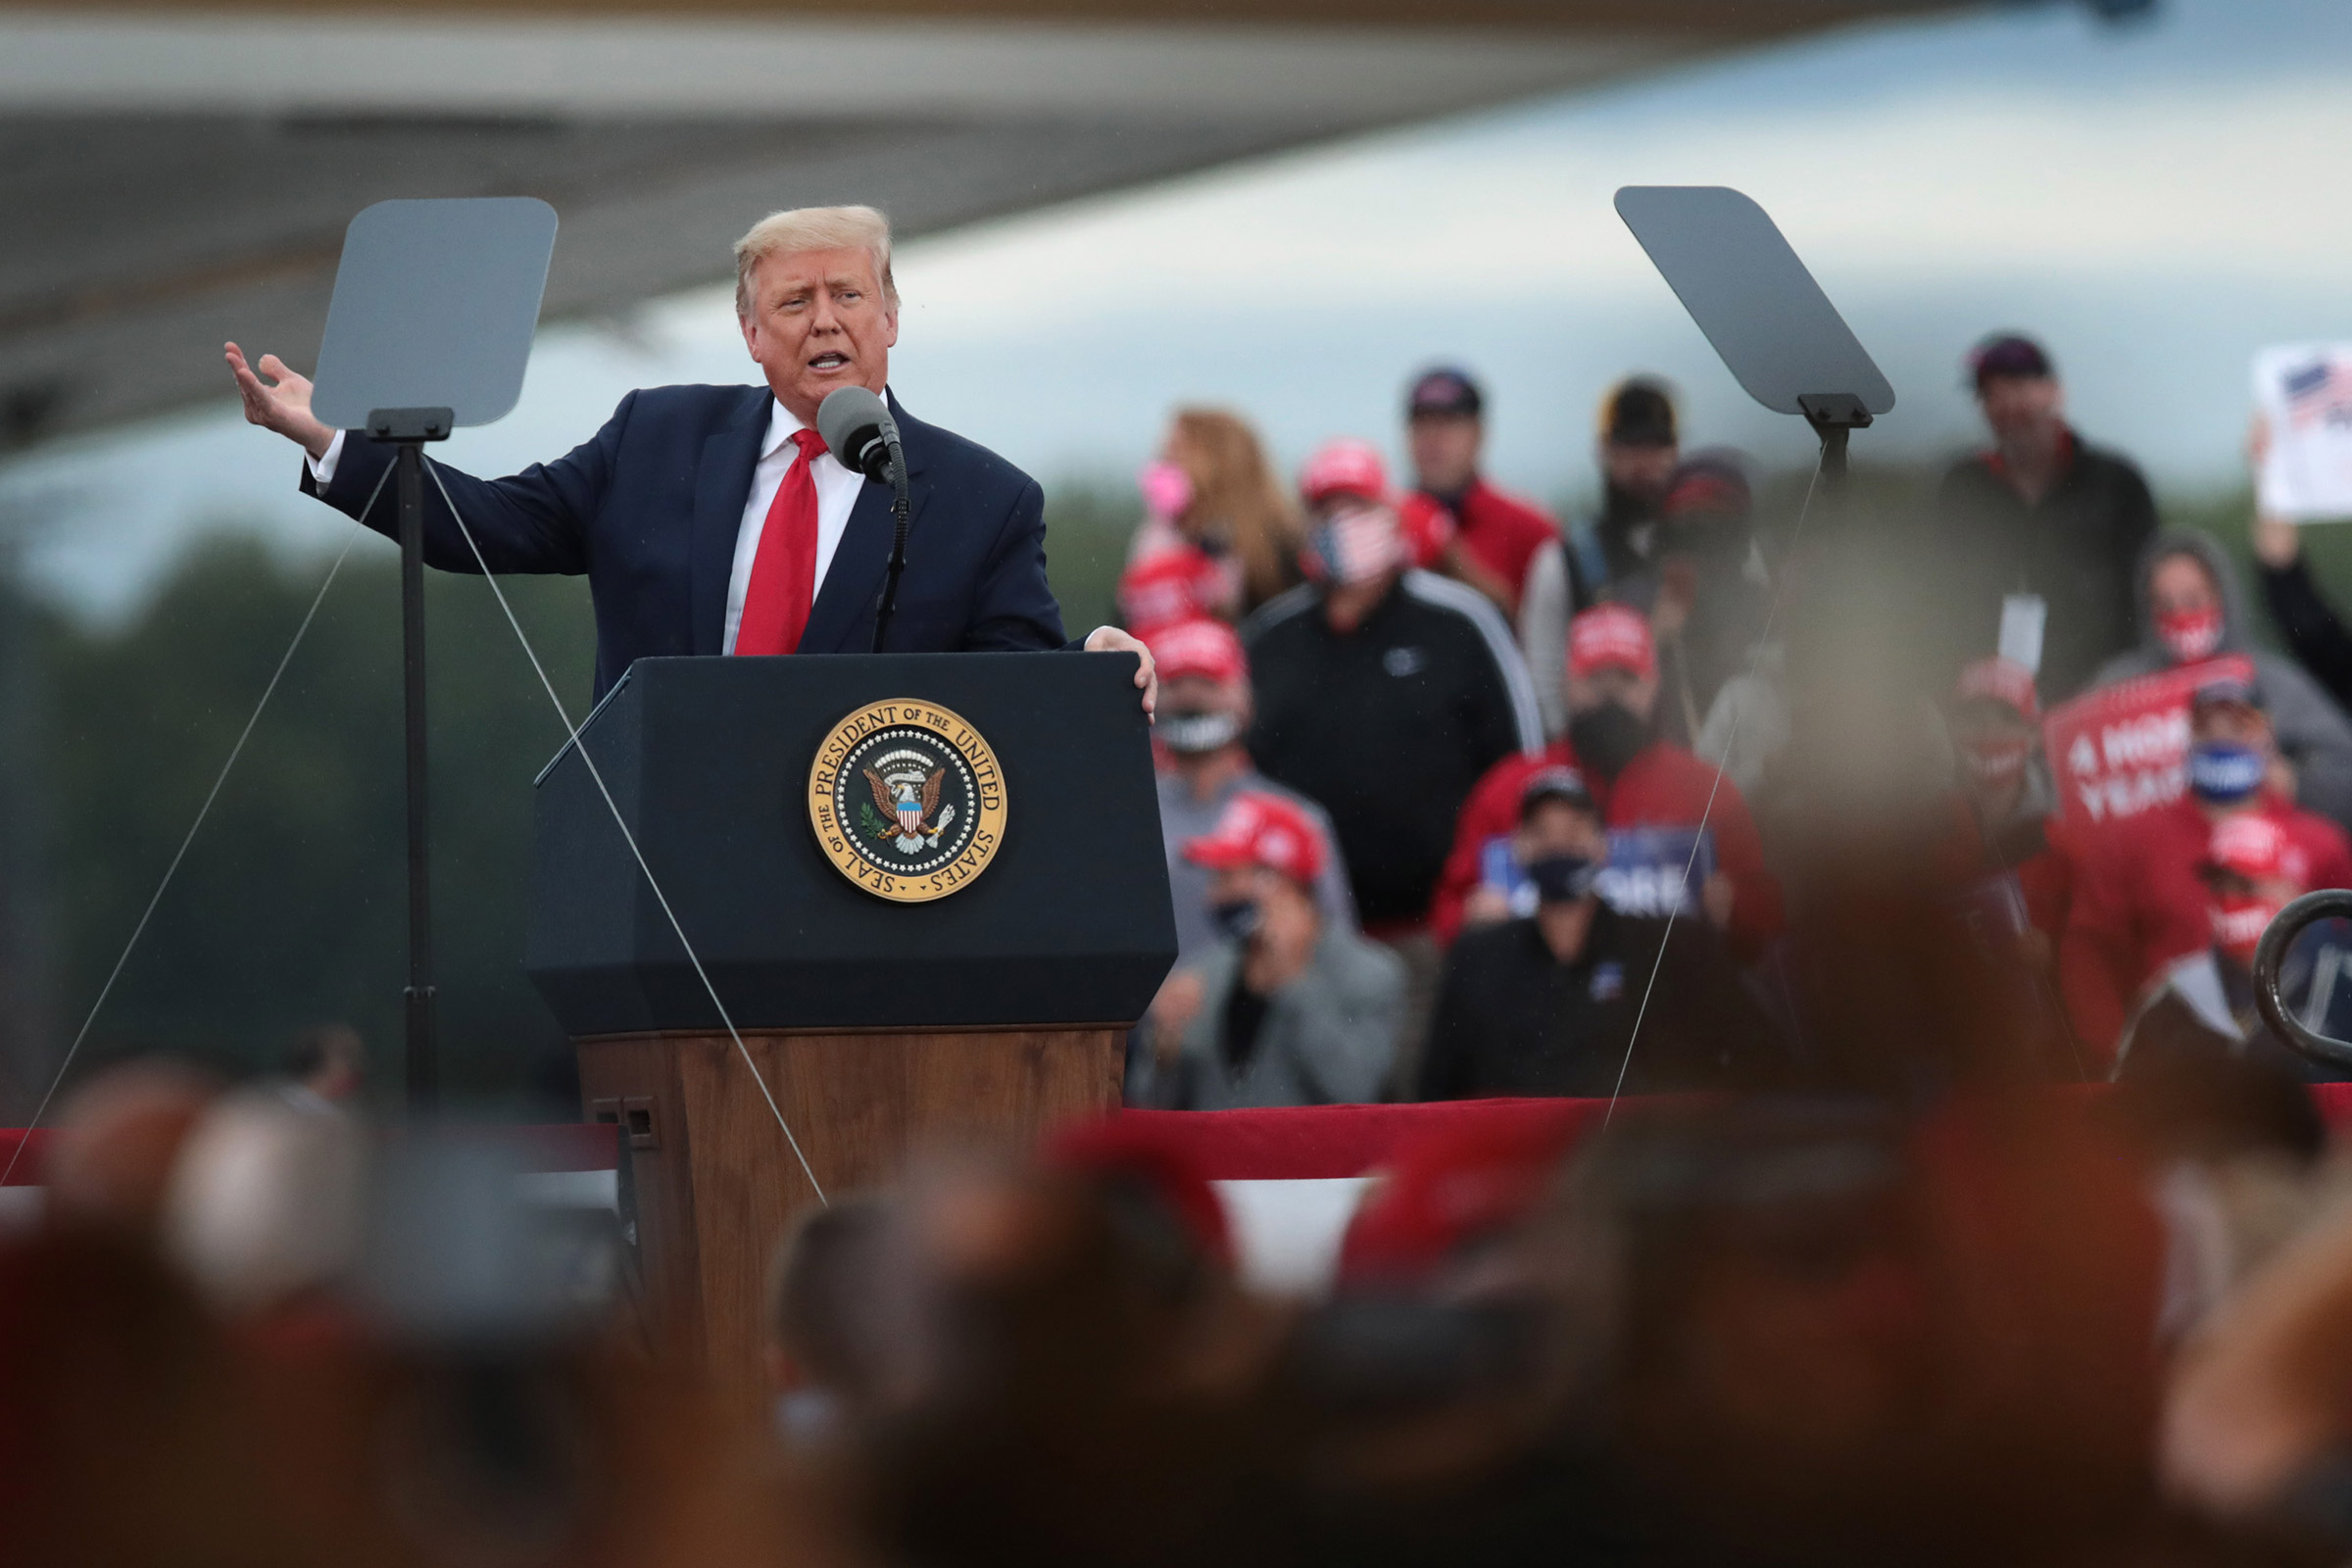 President Donald Trump speaks to supporters during a rally in Freeland, Mich., on Sept. 10, 2020.